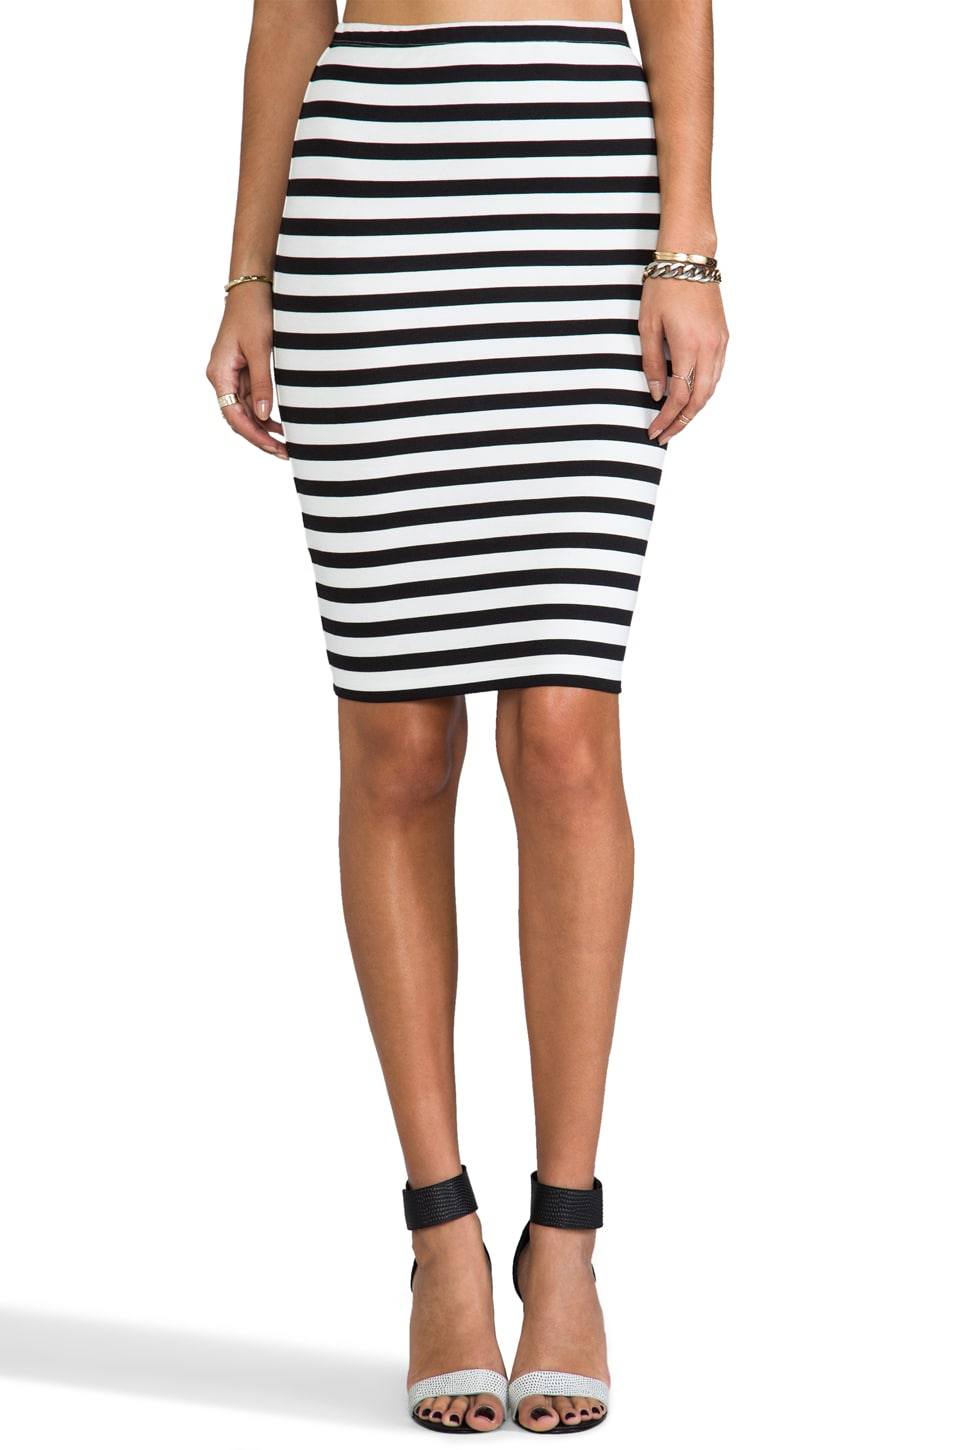 BB Dakota Yara Gatsby Stripe Pencil Skirt in Black & White